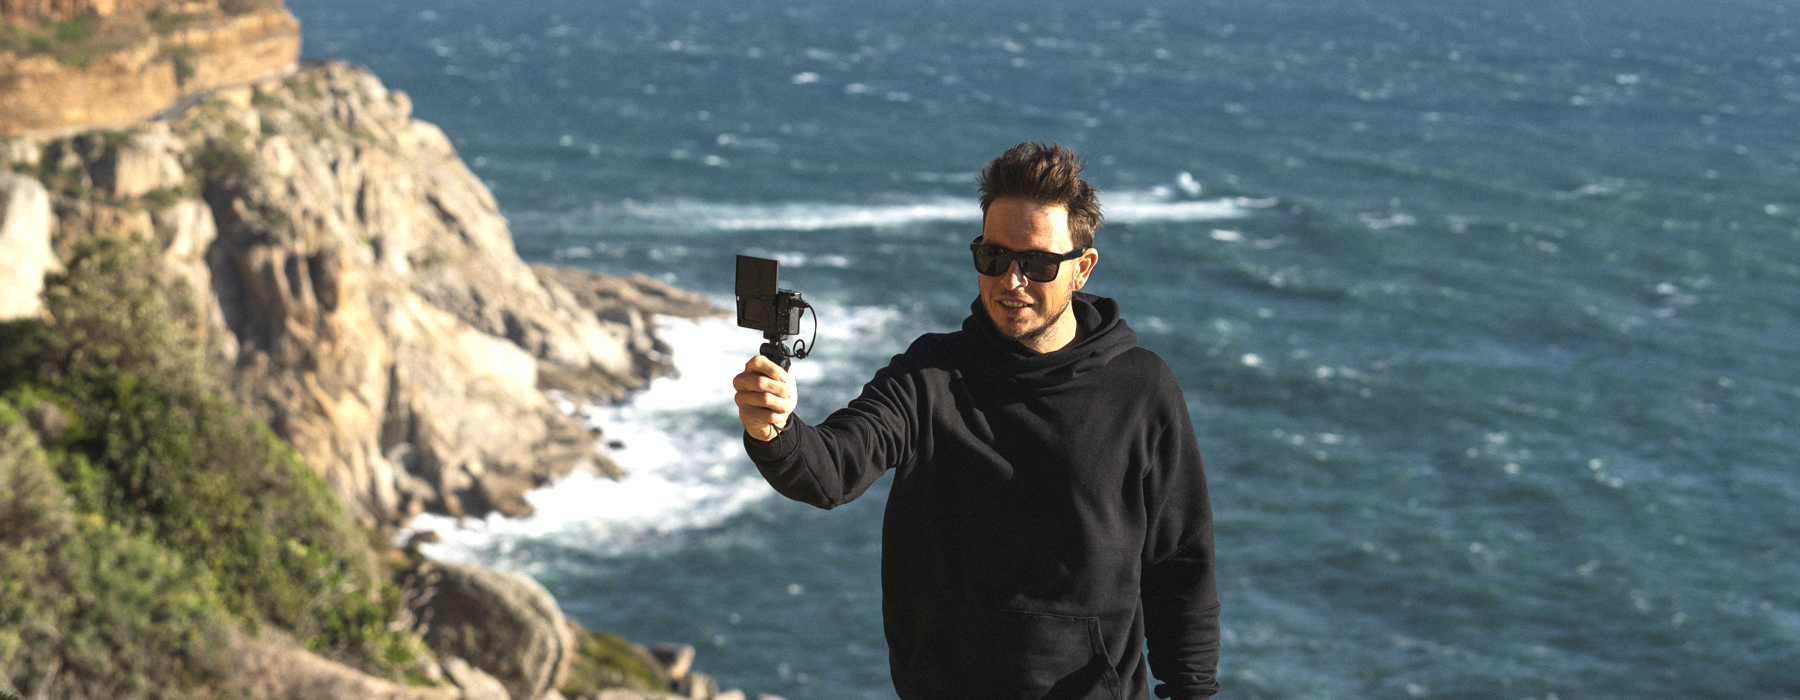 Vlogging Series with Mike Eloff